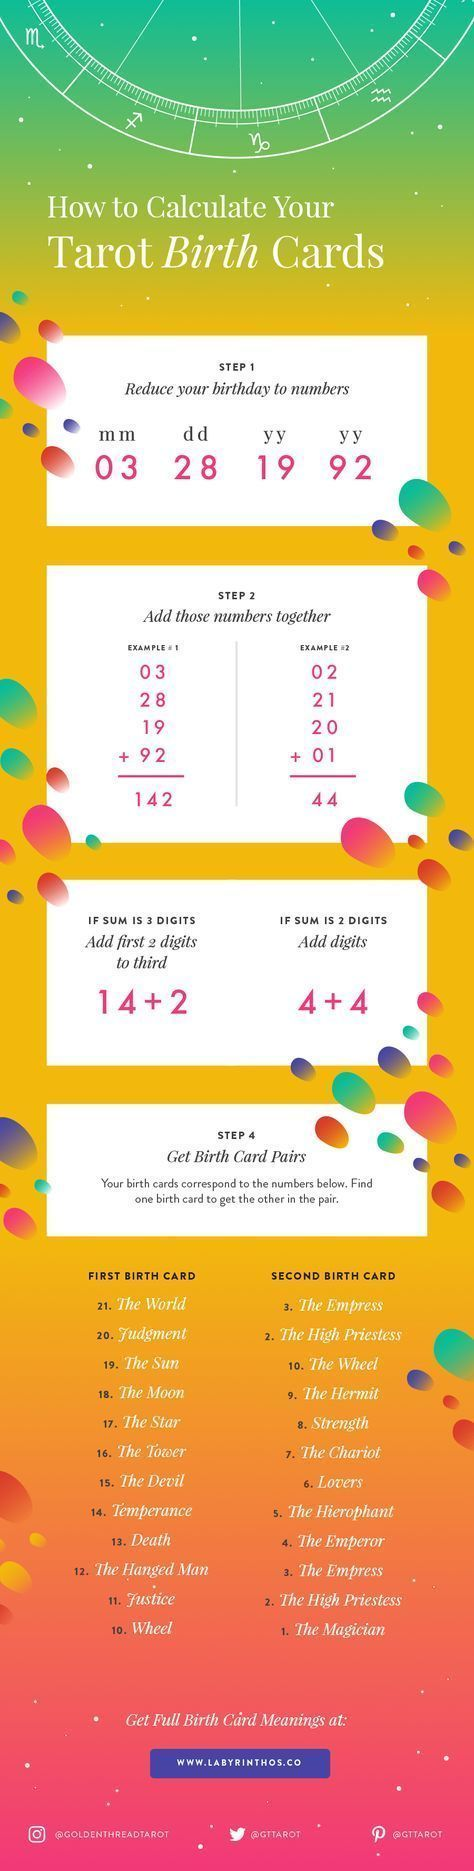 How To Calculate Your Tarot Birth Card Infographic Plus Tarot Birth Card Meanings In The Article Birth Cards Tarot Learning Tarot Meanings